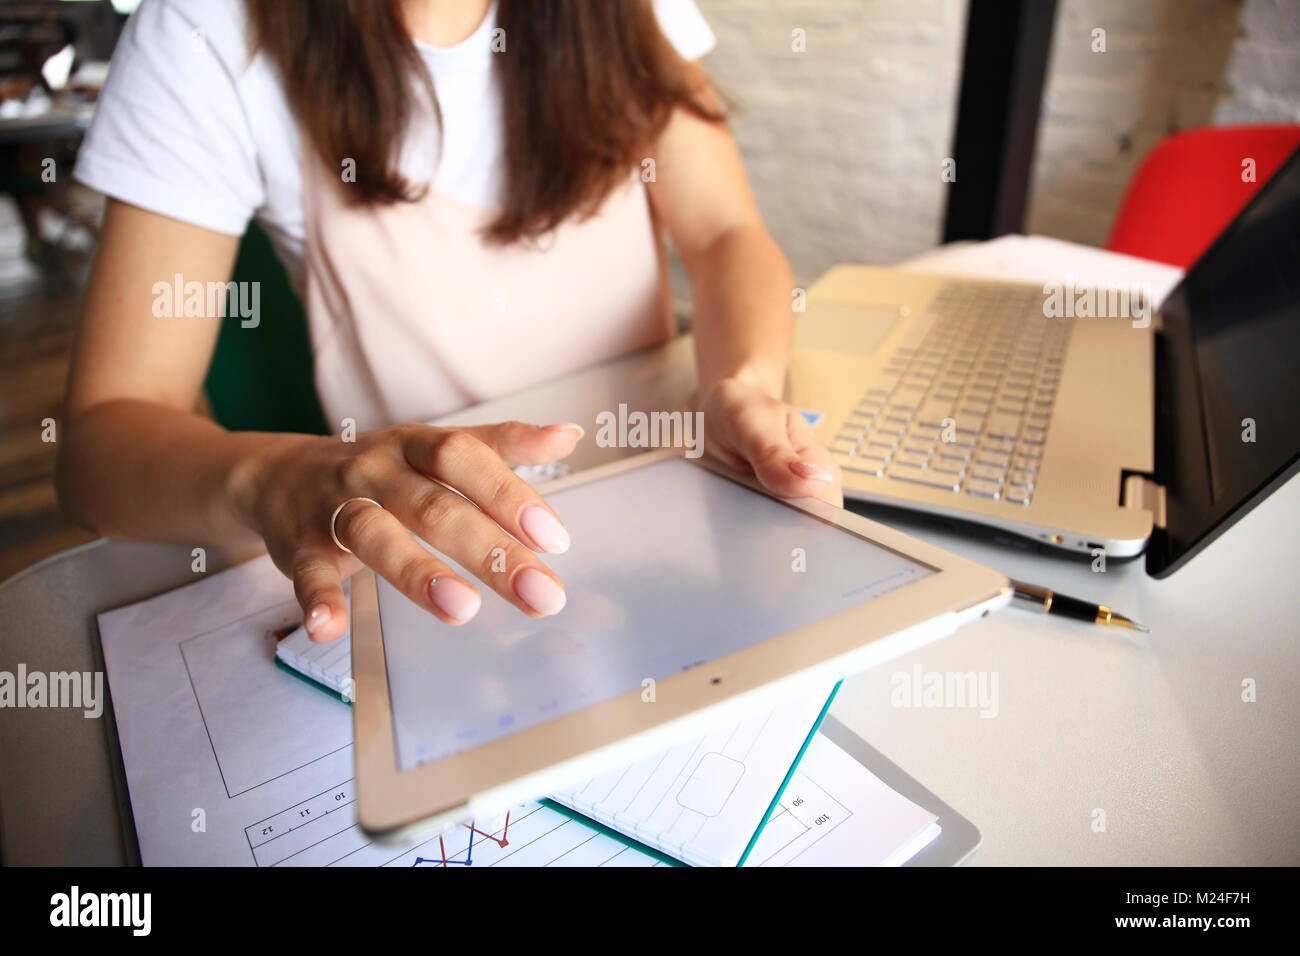 Smiling young woman using digital tablet in the office. Stock Photo